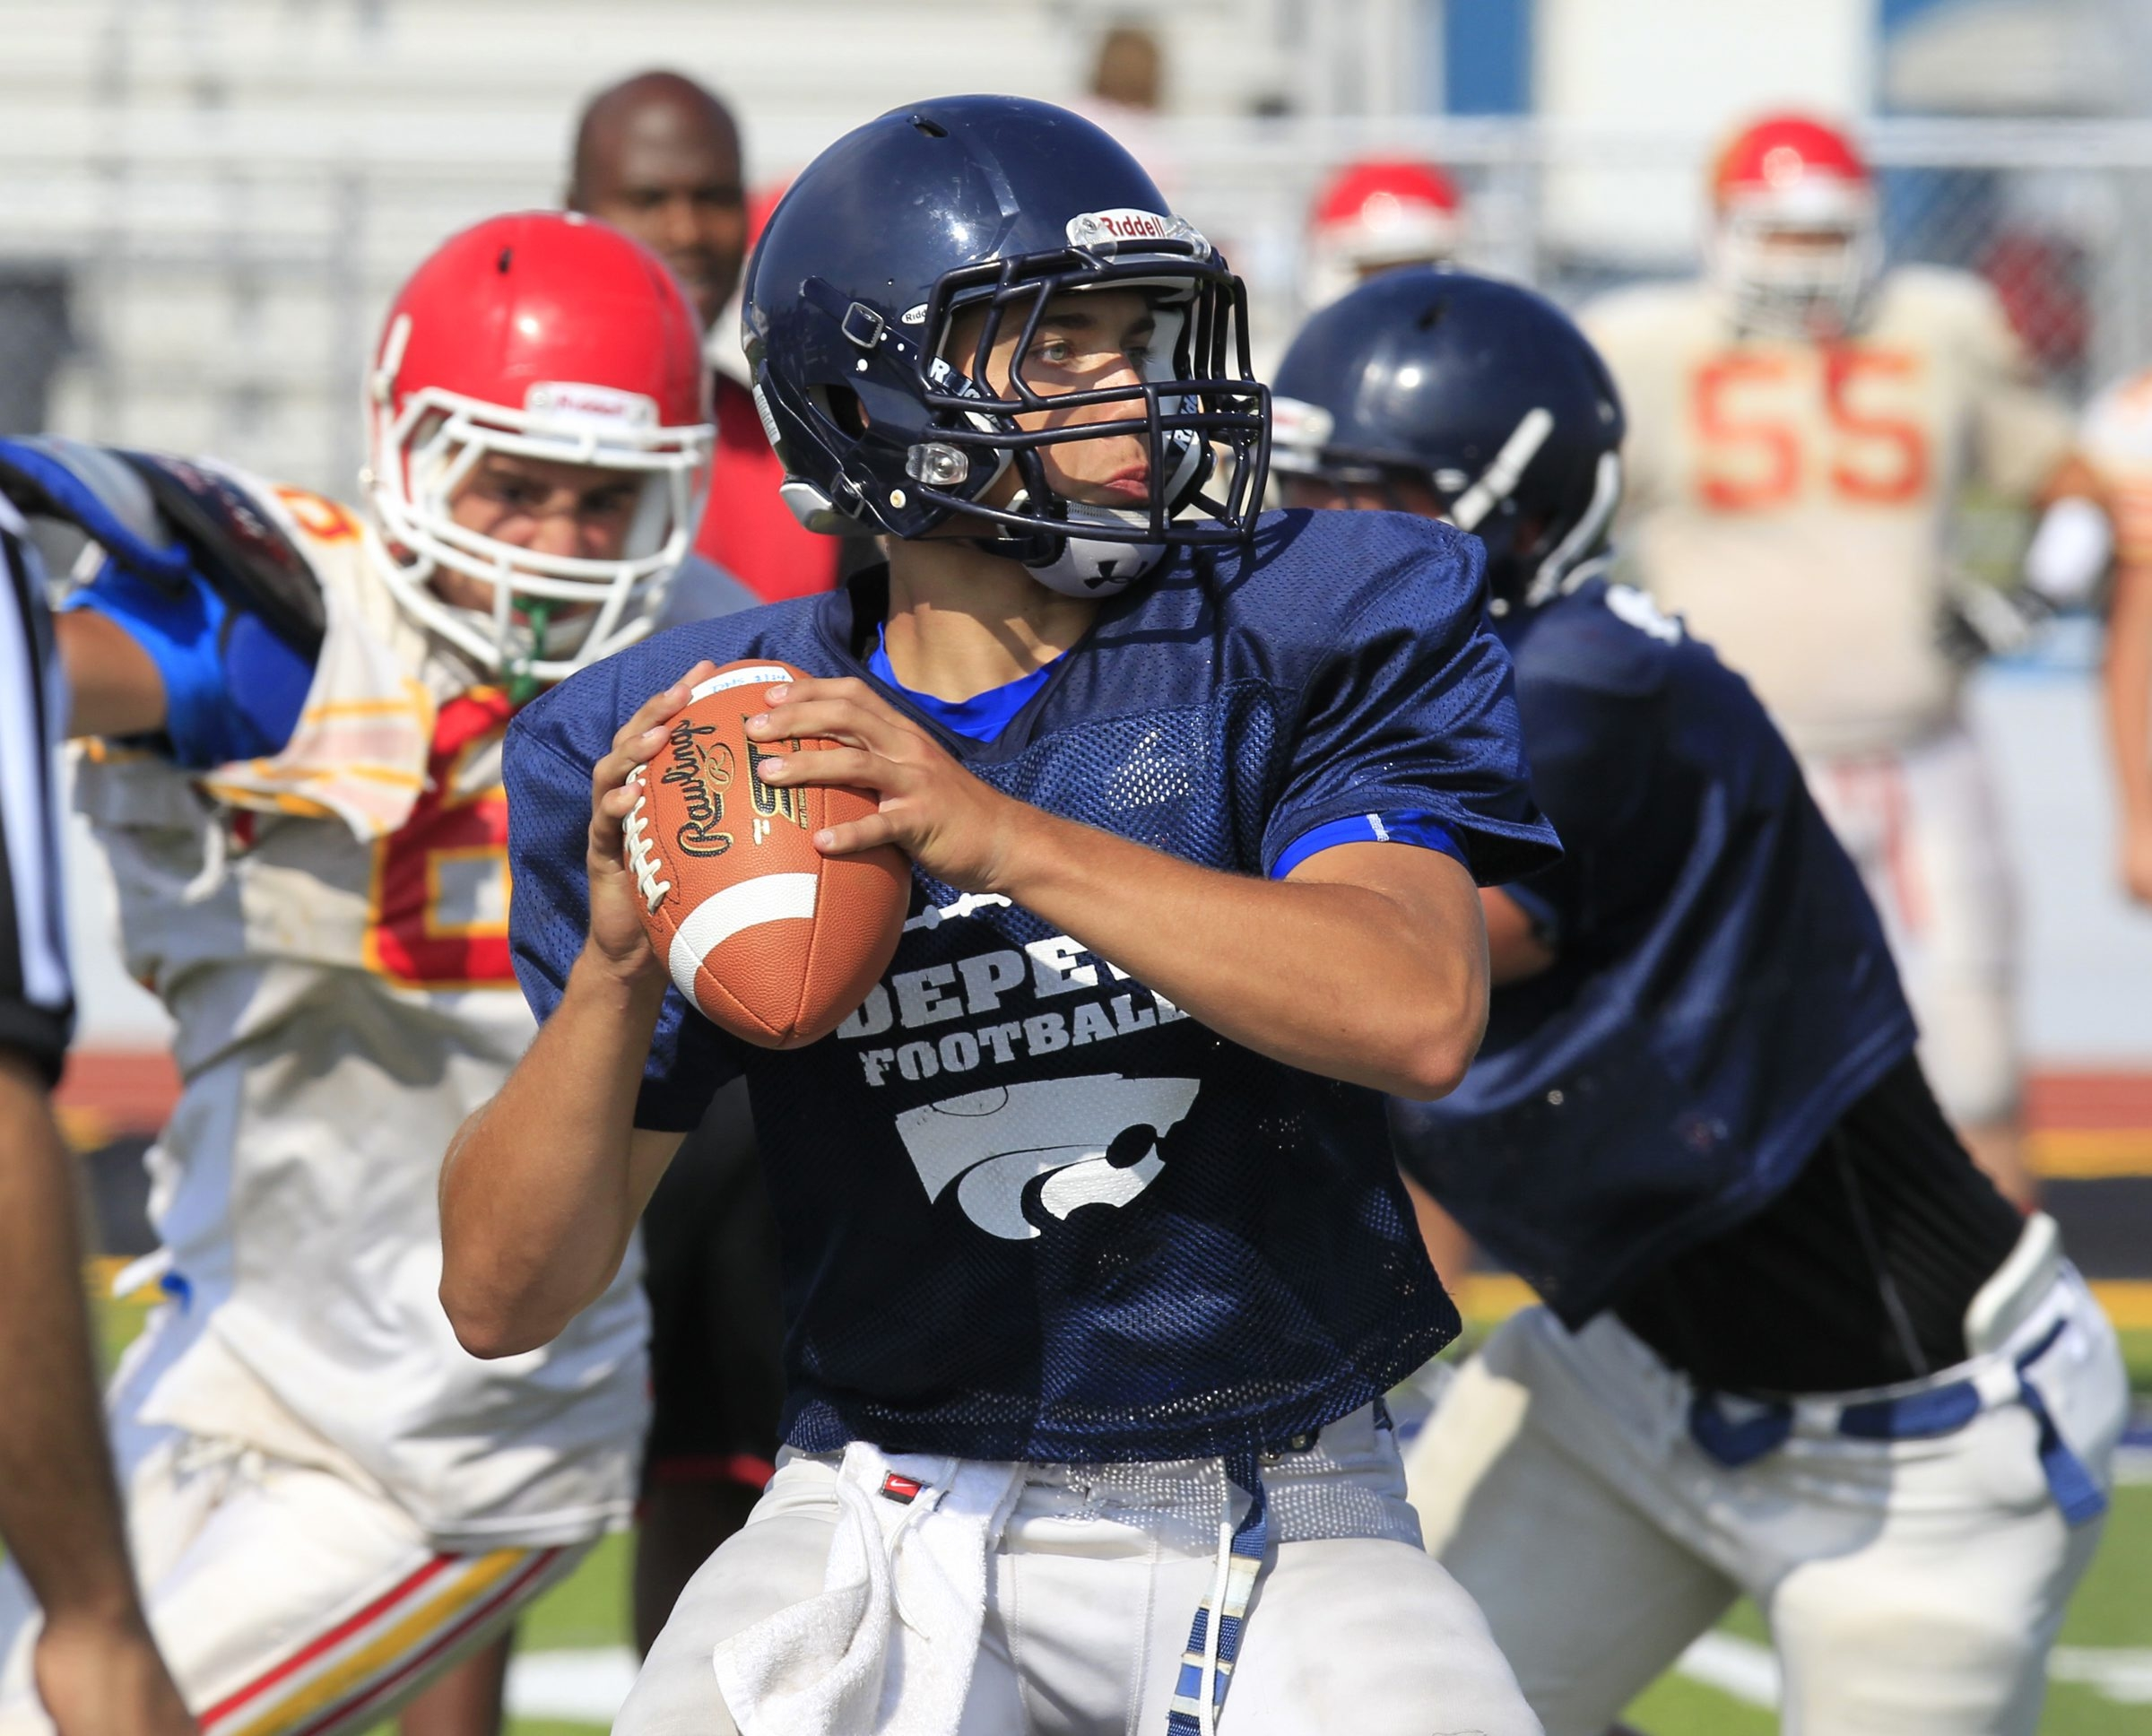 Quarterback Dylan Sekuterski and Depew take to the road to try and make it back-to-back wins over Alden.